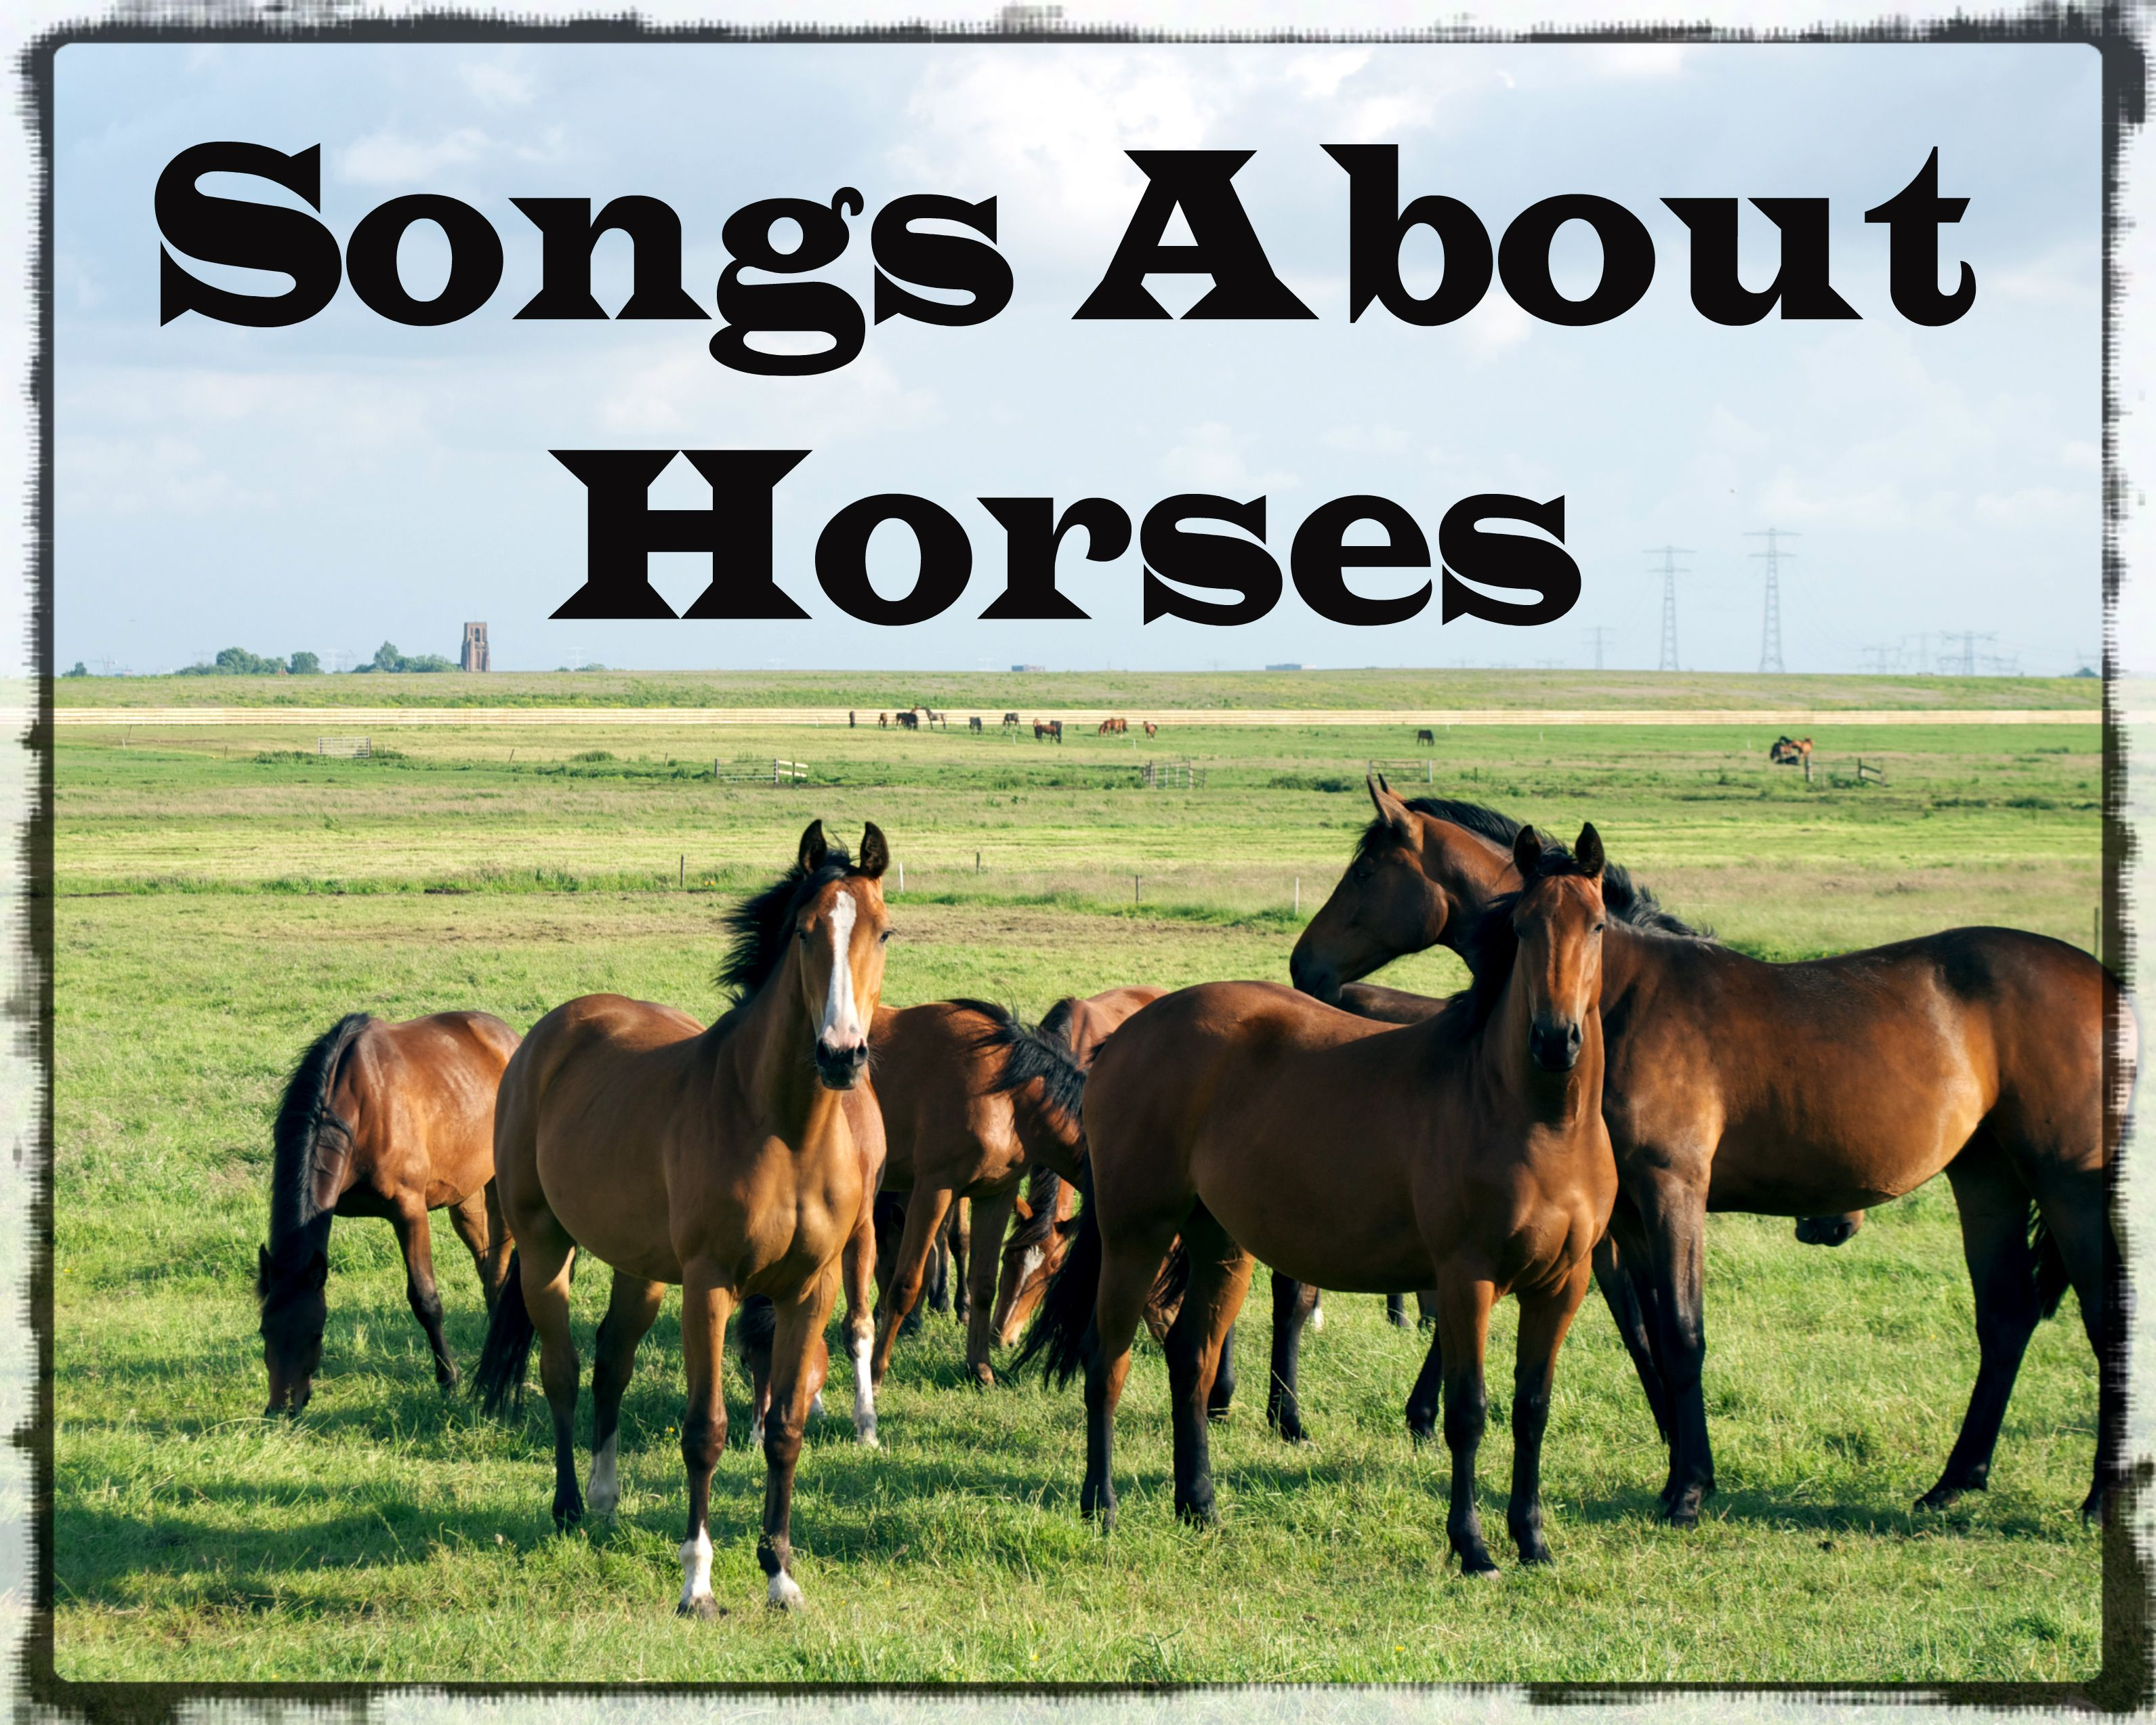 39 Songs About Horses Horses, Horse names